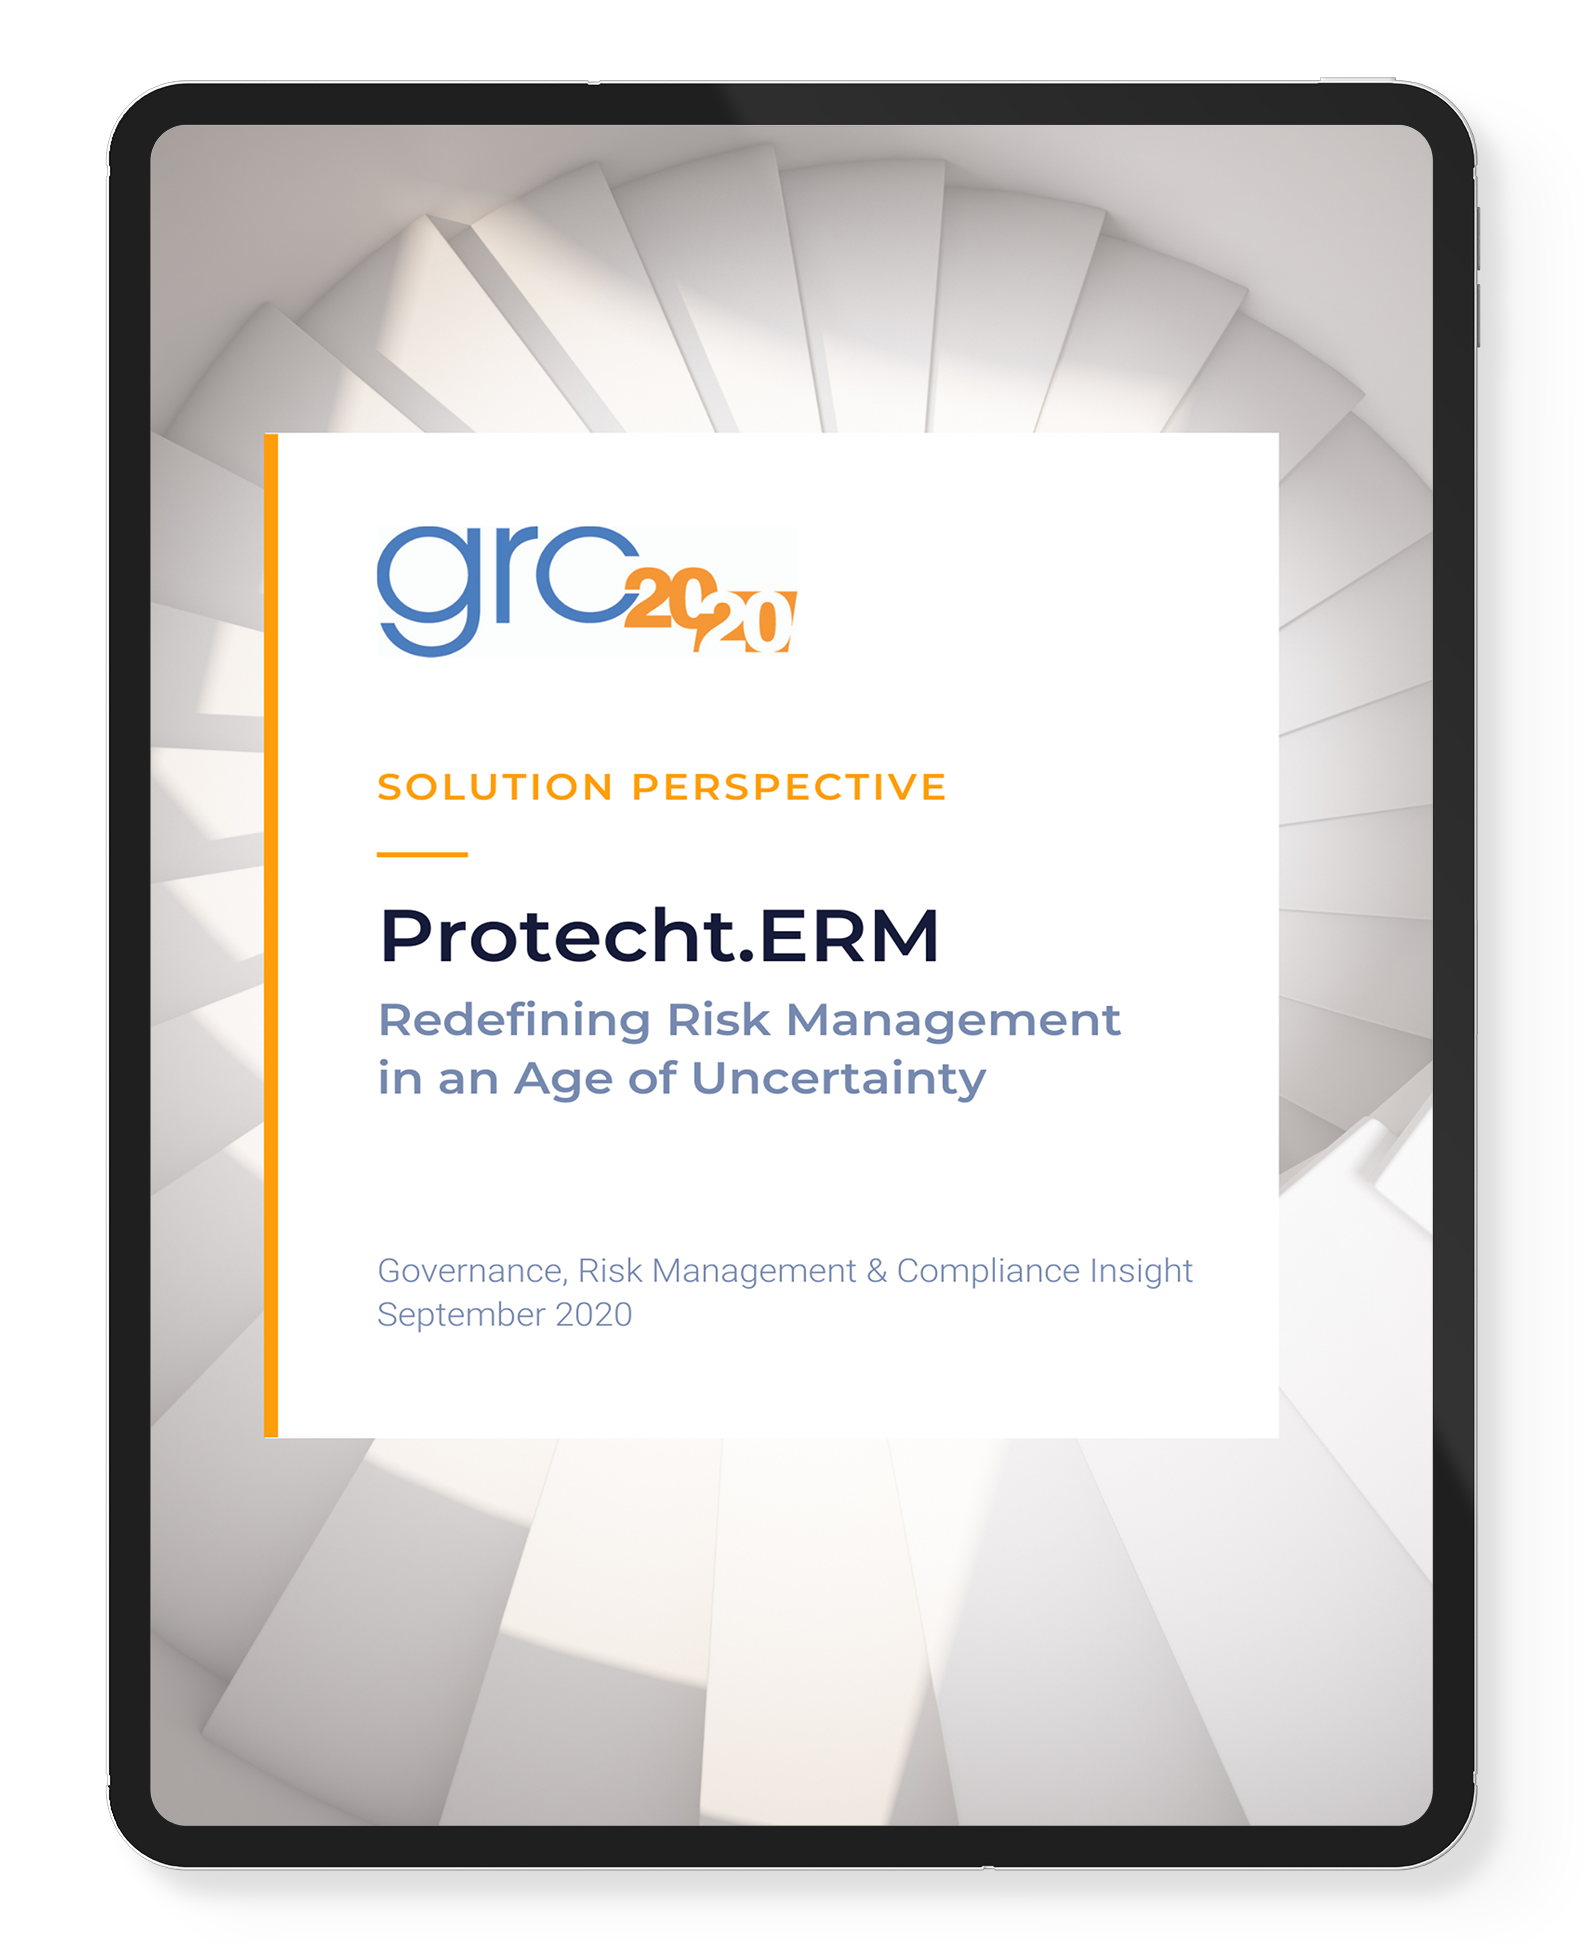 GRC 20/20 Solution Perspective for Protecht.ERM ebook cover